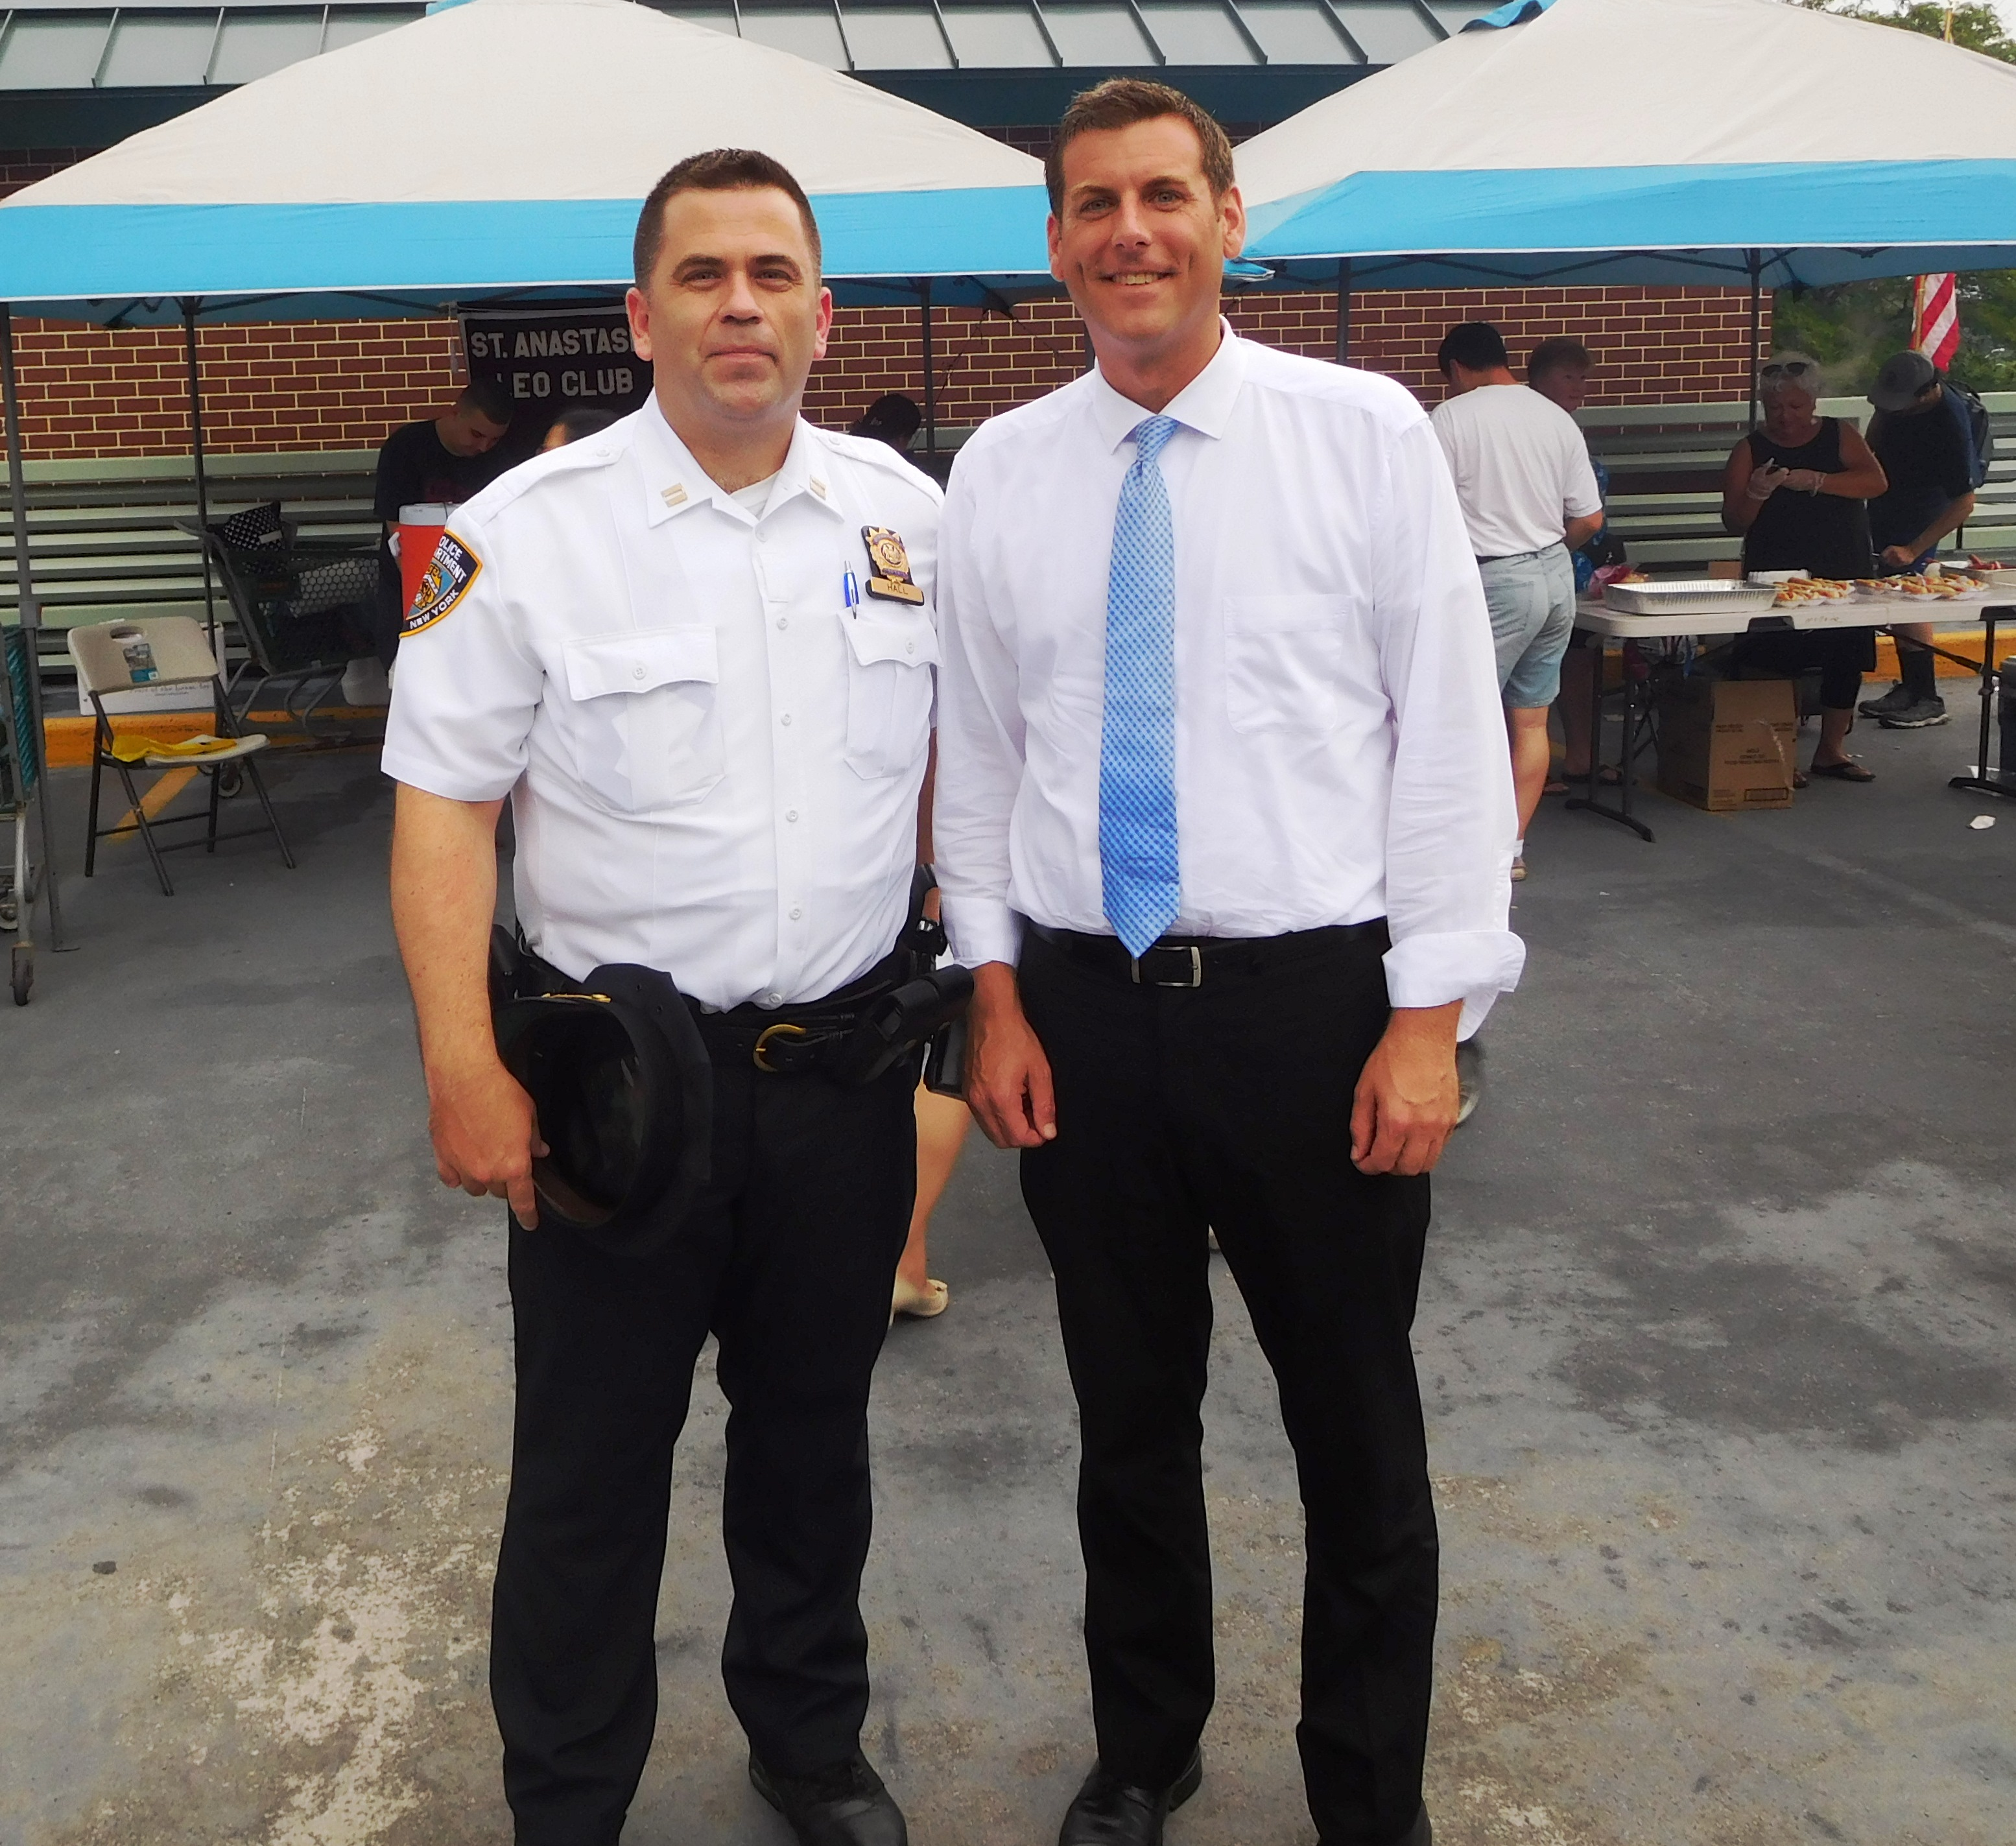 On August 7, 2018, Assemblyman Braunstein attended the 111th Precinct's National Night Out event in Douglaston.